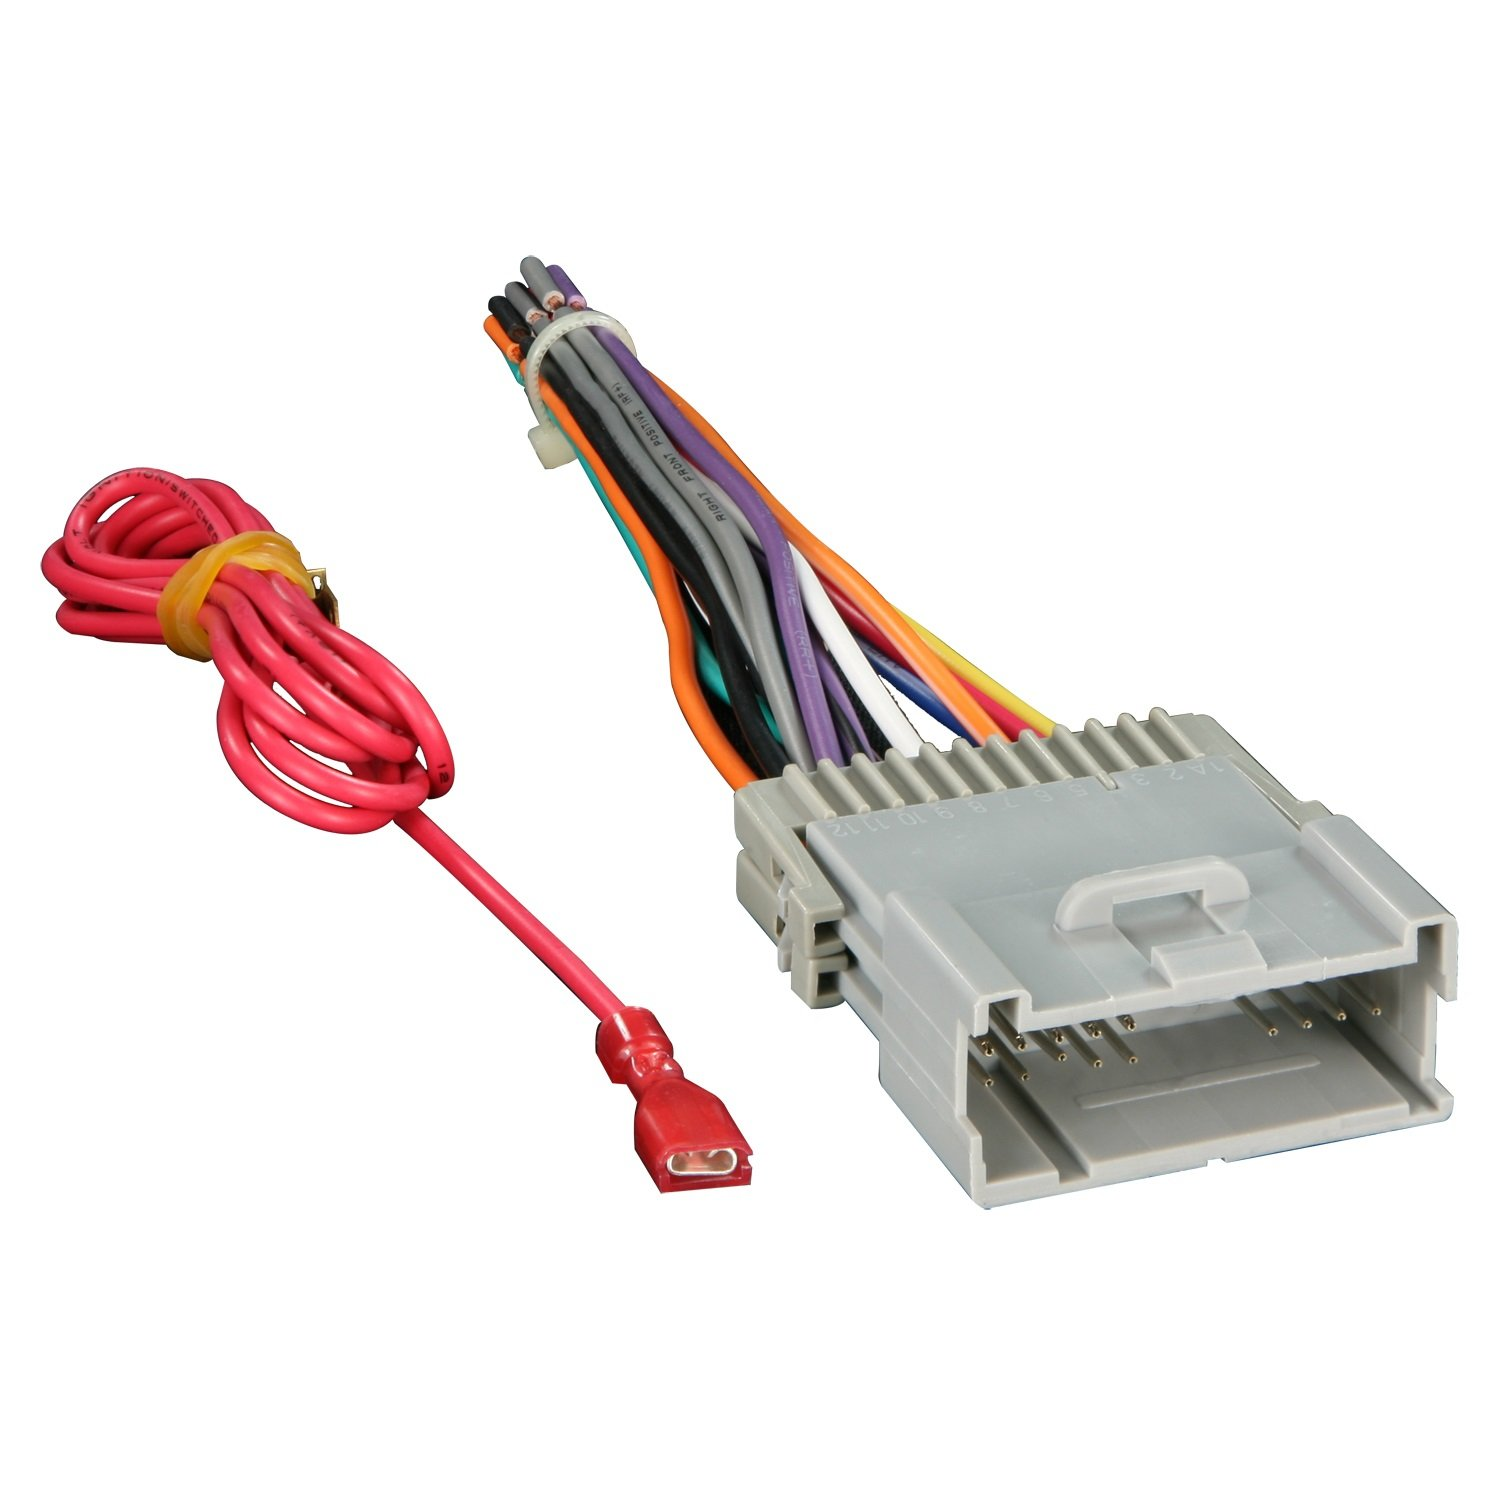 61eewxp9orL._SL1500_ amazon com metra 70 2003 radio wiring harness for gm 98 08 snap on wire harness adapter at edmiracle.co